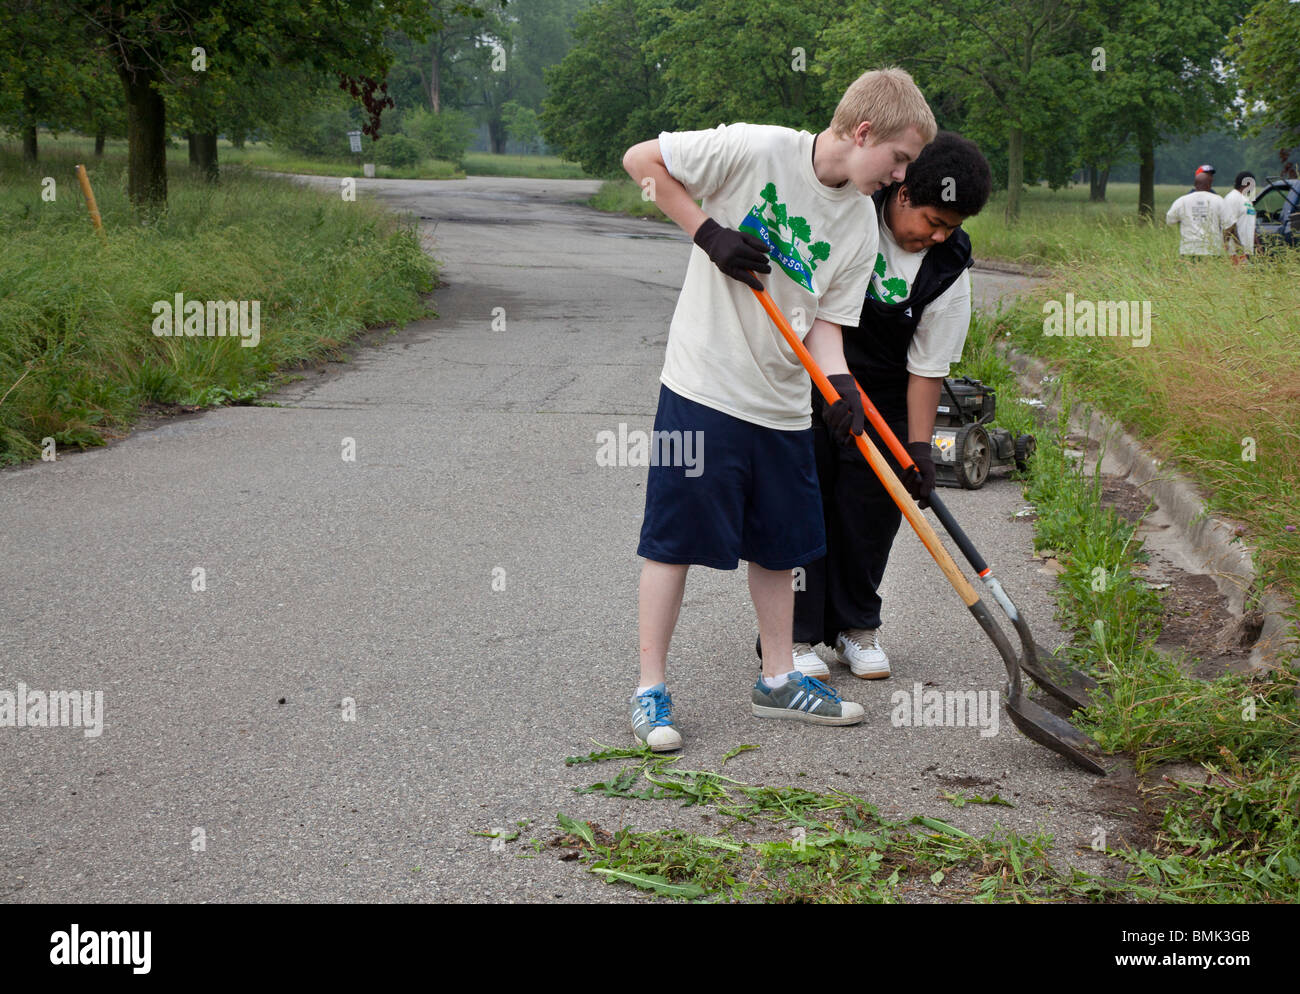 Detroit, Michigan - Volunteers clean up Eliza Howell Park, cutting weeds, clearing trash, and removing invasive - Stock Image